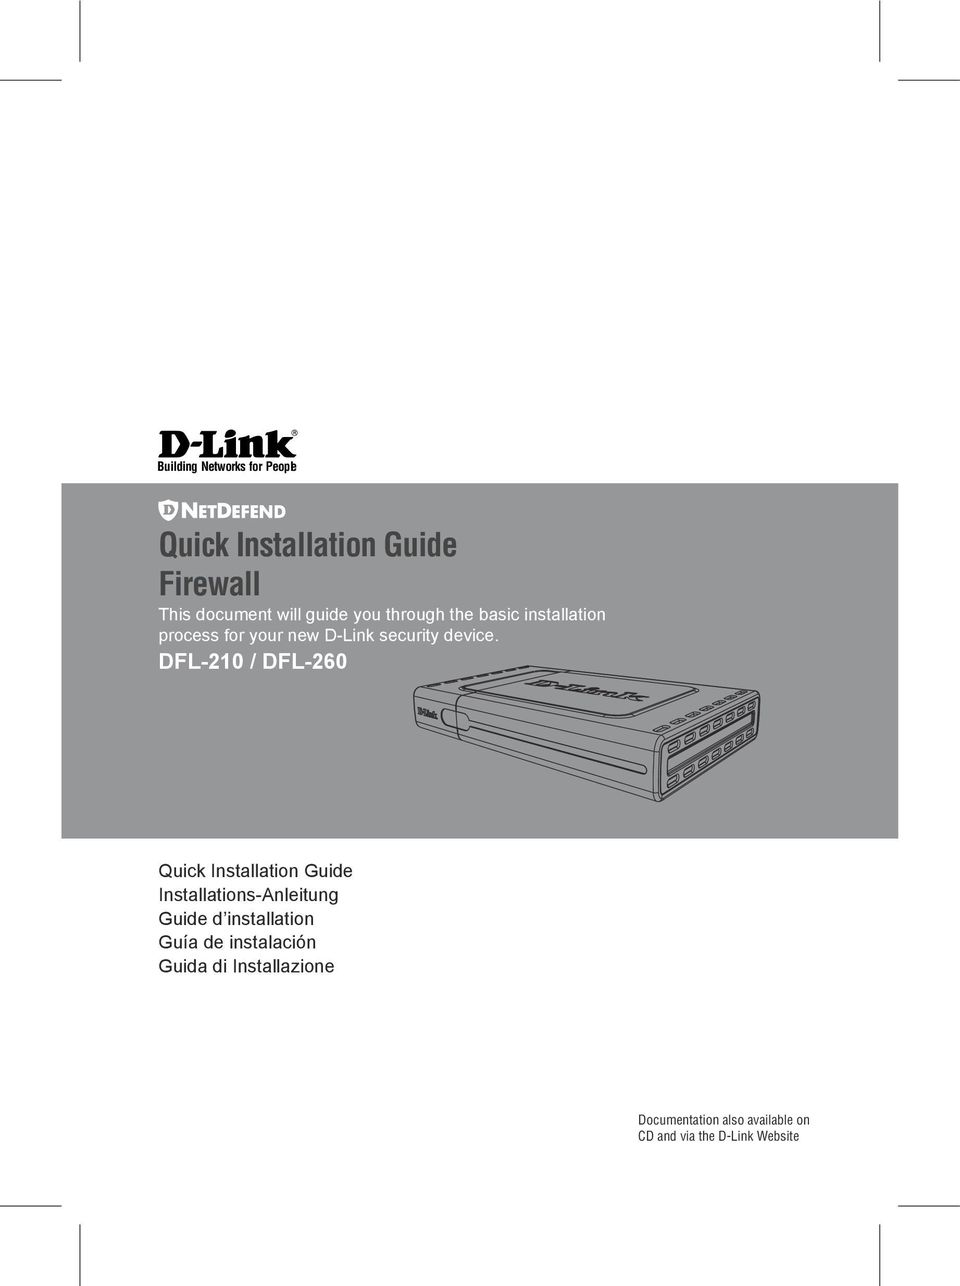 DFL-210 / DFL-260 Quick Installation Guide Installations-Anleitung Guide d installation